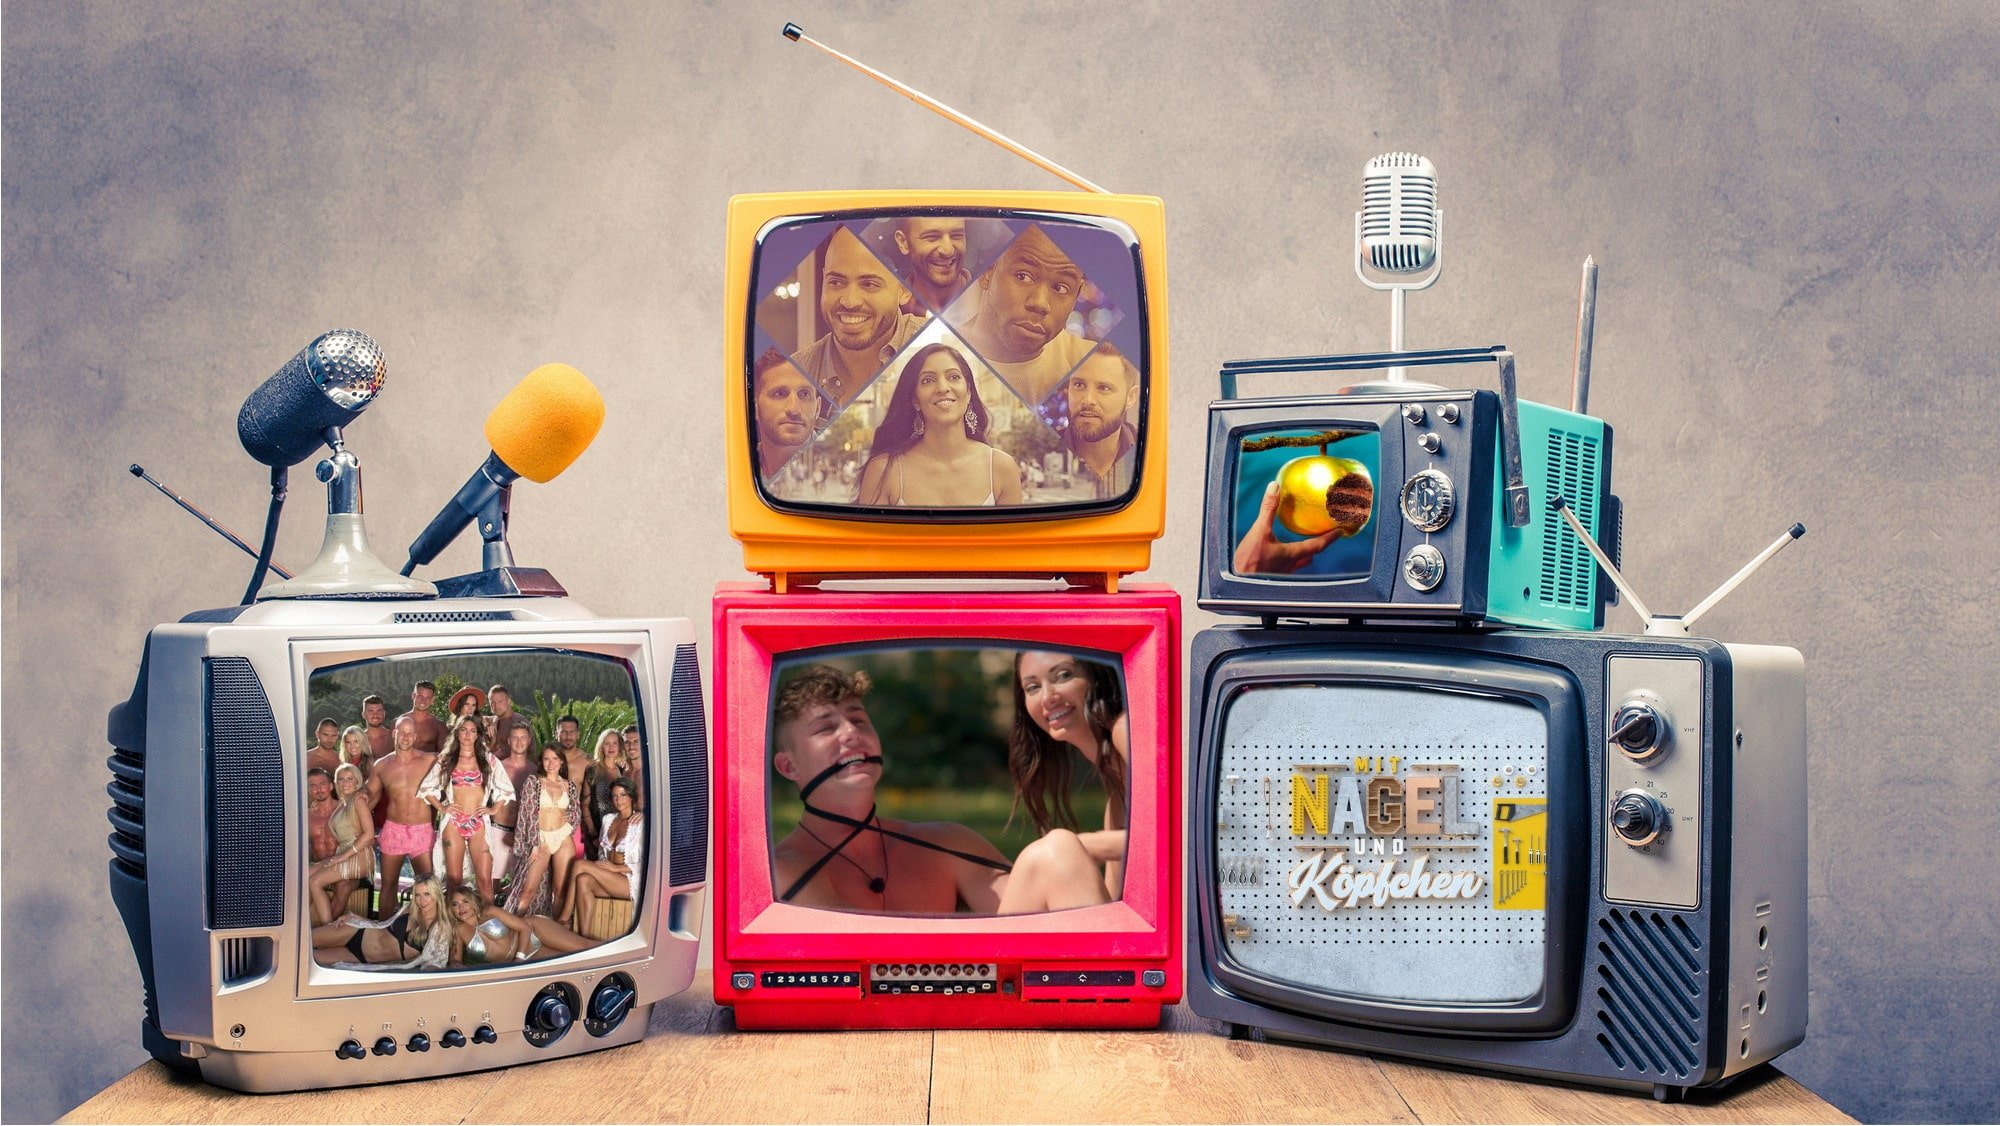 Awesome 5 neue Reality TV Formate